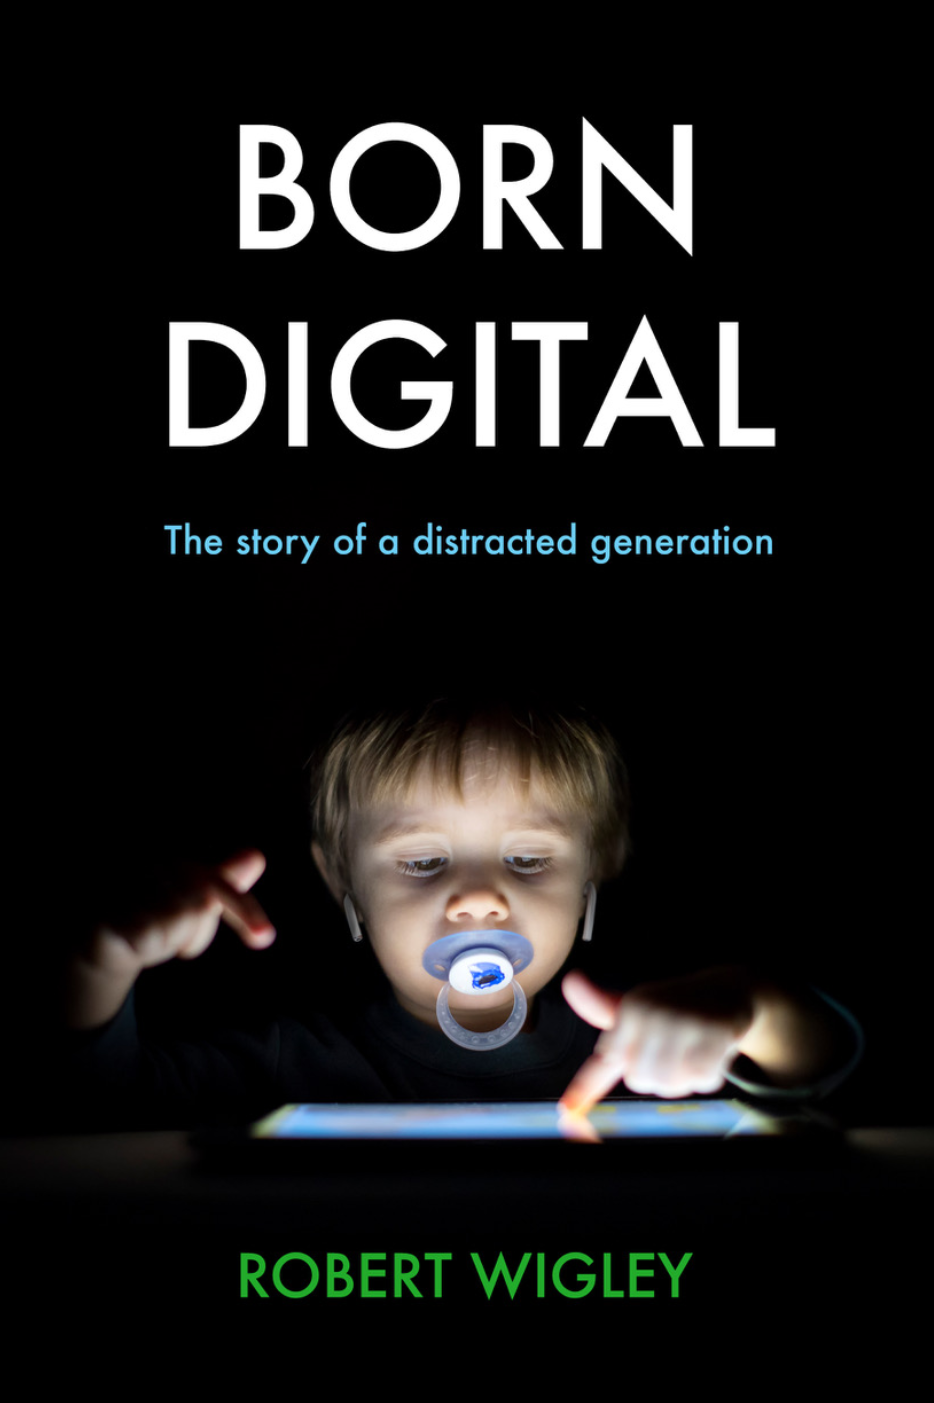 The cover of Born Digital by Robert Wigley. It shows a toddler playing with a tablet.